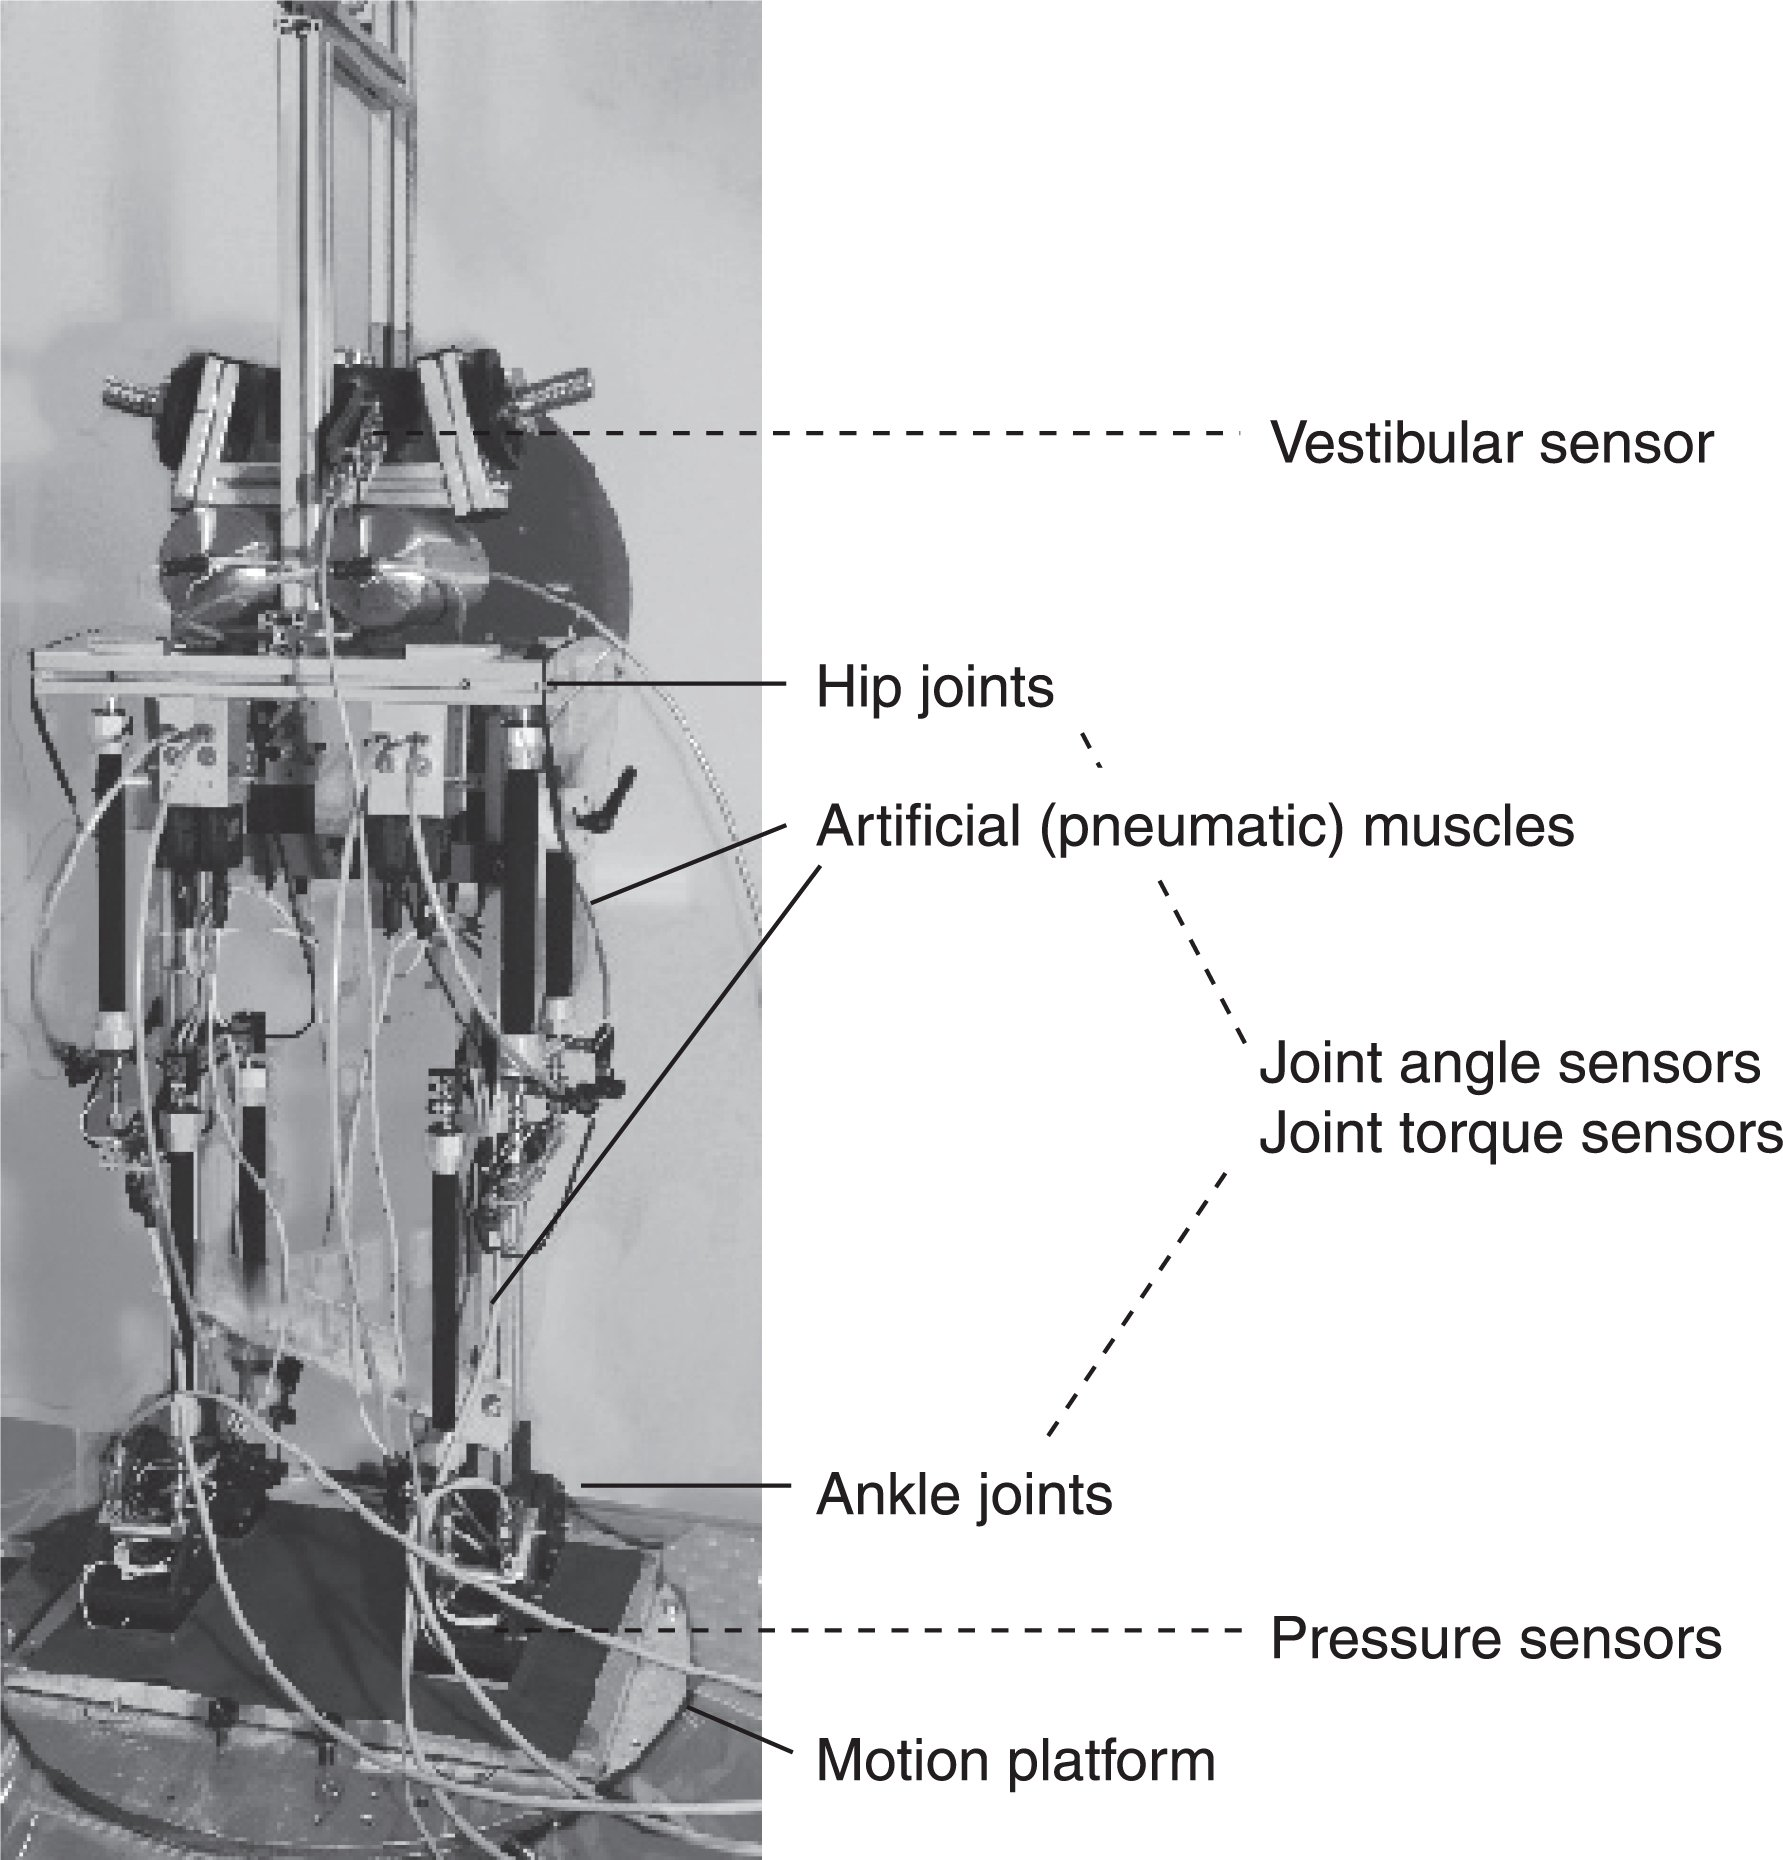 Picture of postural control robot Posturob II (2 DOF, hip and ankle joints). It is given human anthropometric parameters, uses artificial muscles and mechatronic artificial sensors and is controlled by the DEC algorithm. It serves as 'real world' model that is tested in the postural control laboratory in the same way as the human subjects.